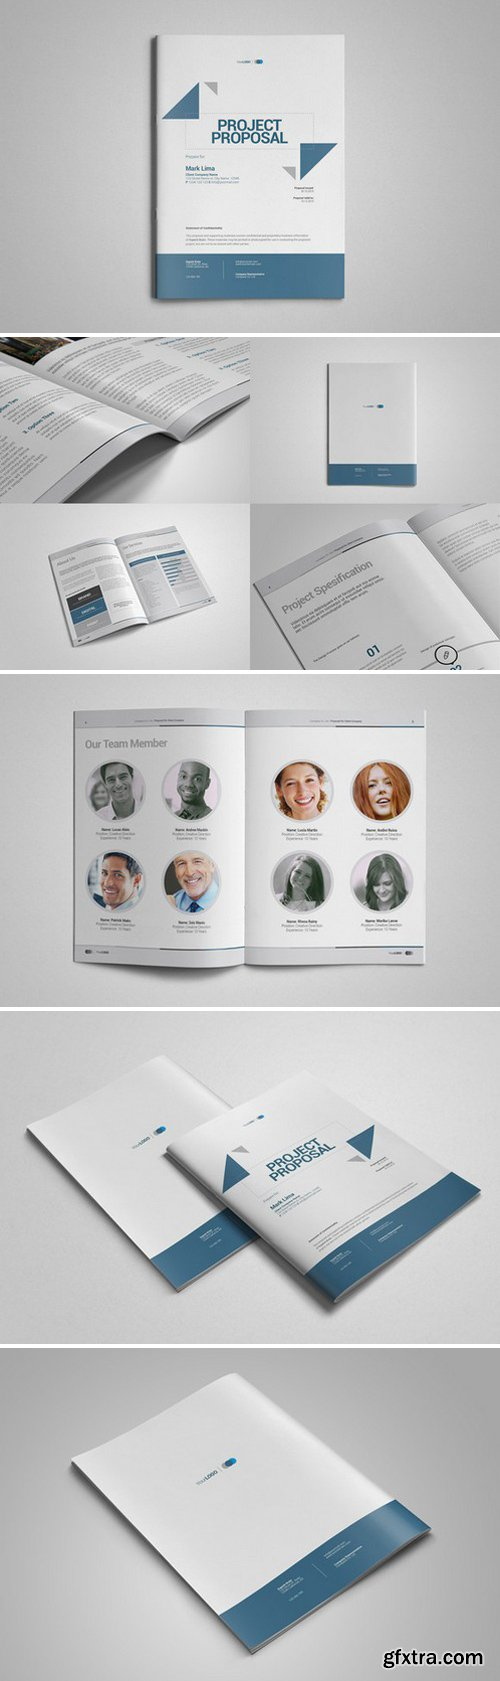 CM - A4 Project Proposal Template 334655